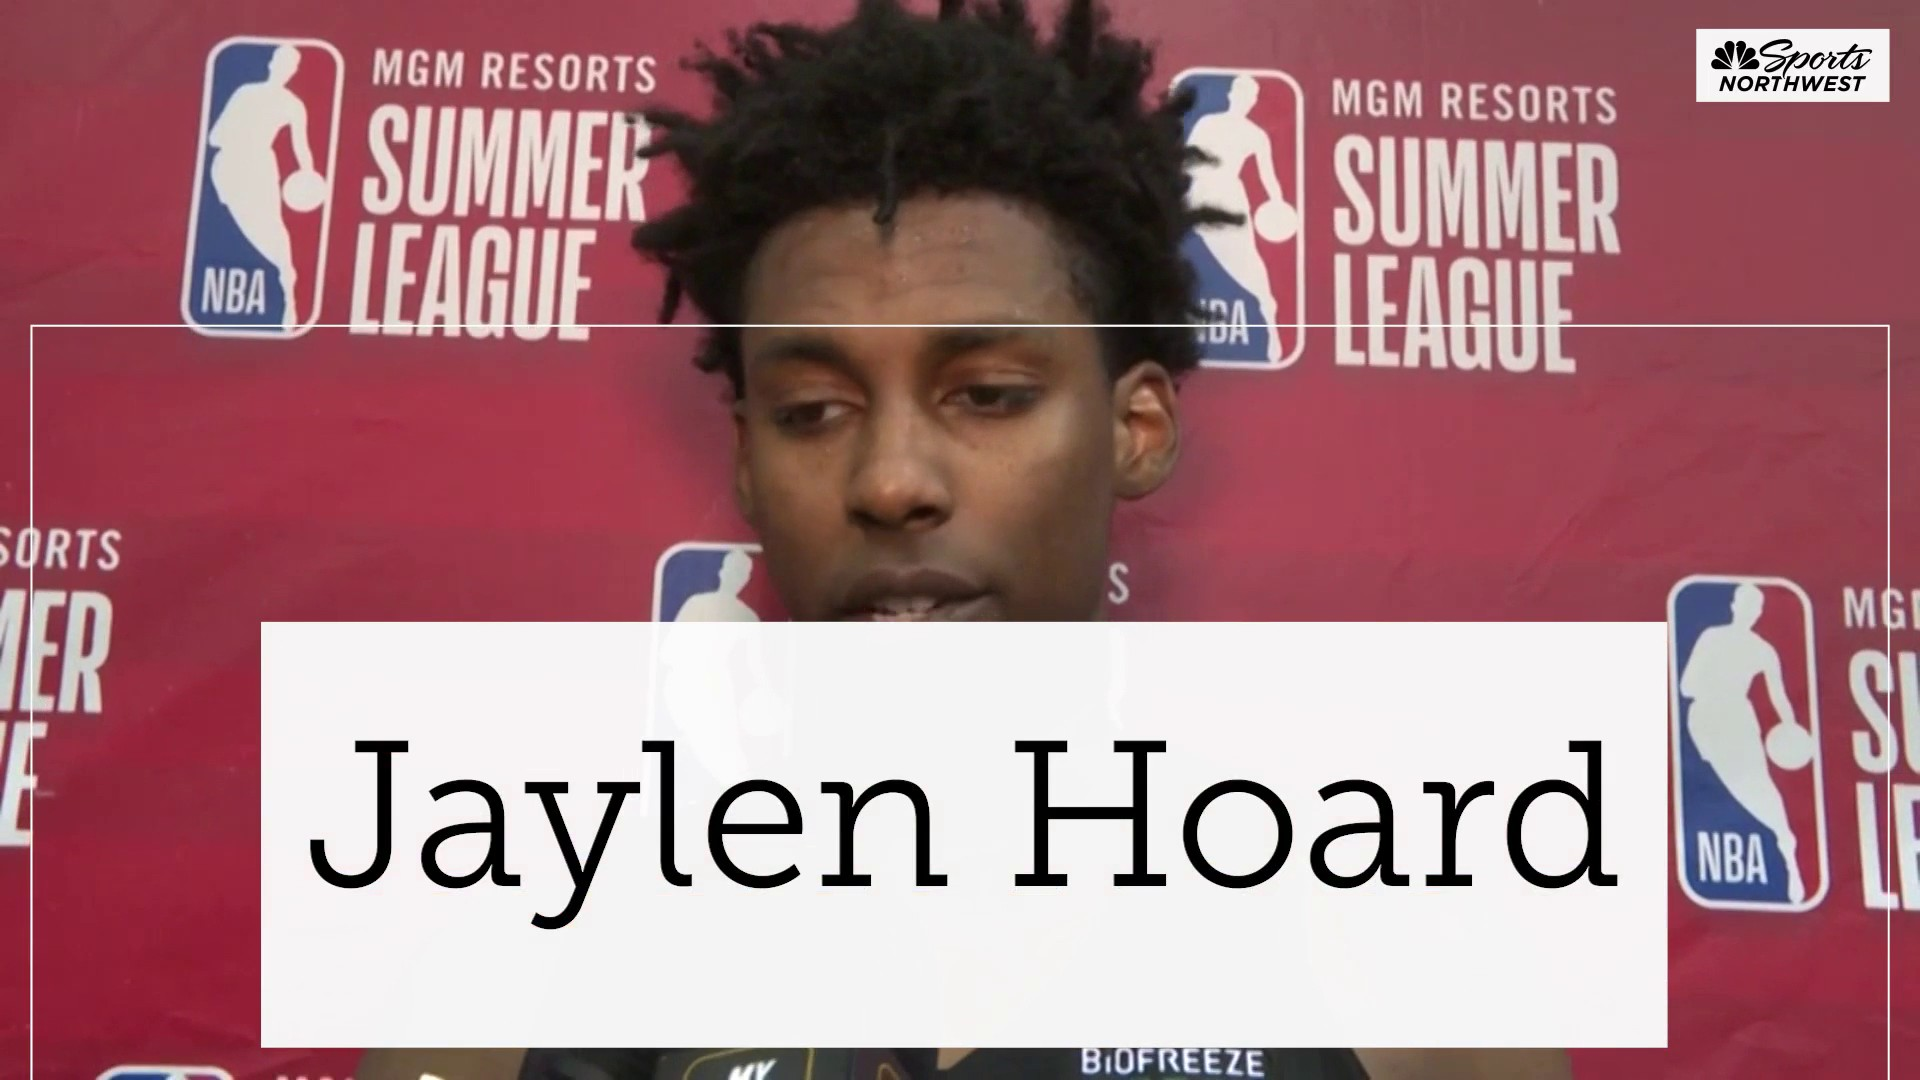 Jaylen Hoard: The Energy Man